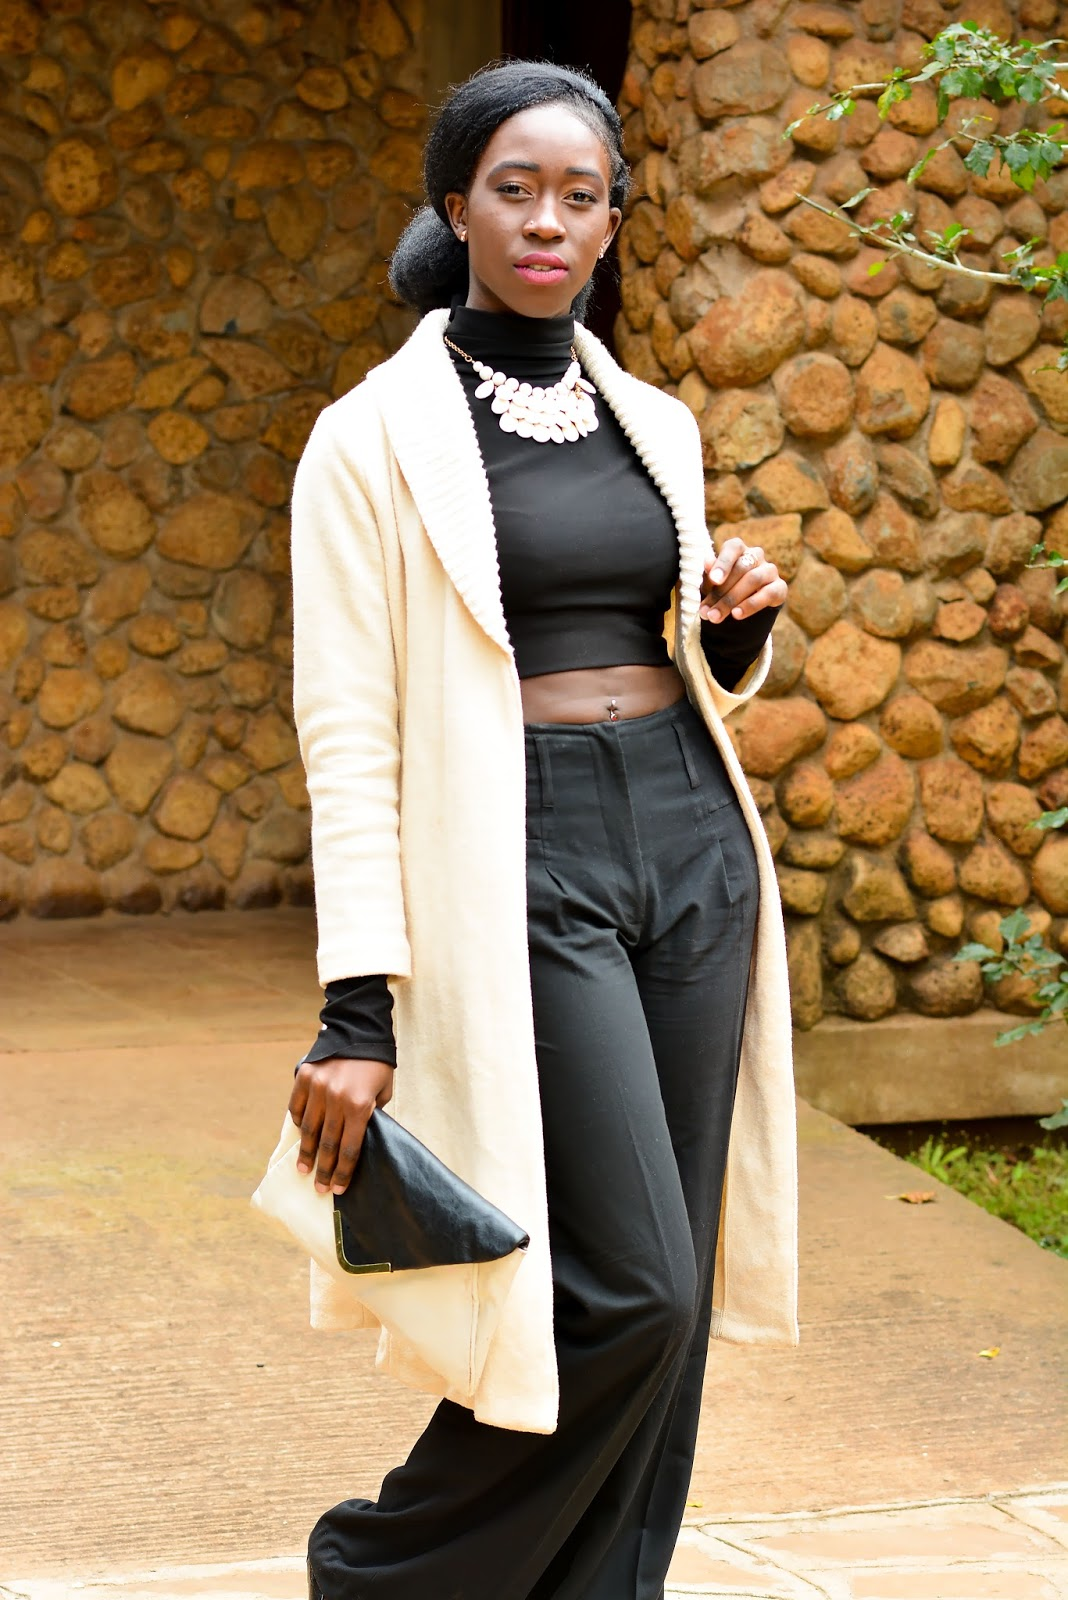 what to wear tot he office, how to style official pants, style with ezil, Ezil, African fashion blogger, Kenyan fashion blogger, All black outfit, caramel coat outfit, elegant outfit